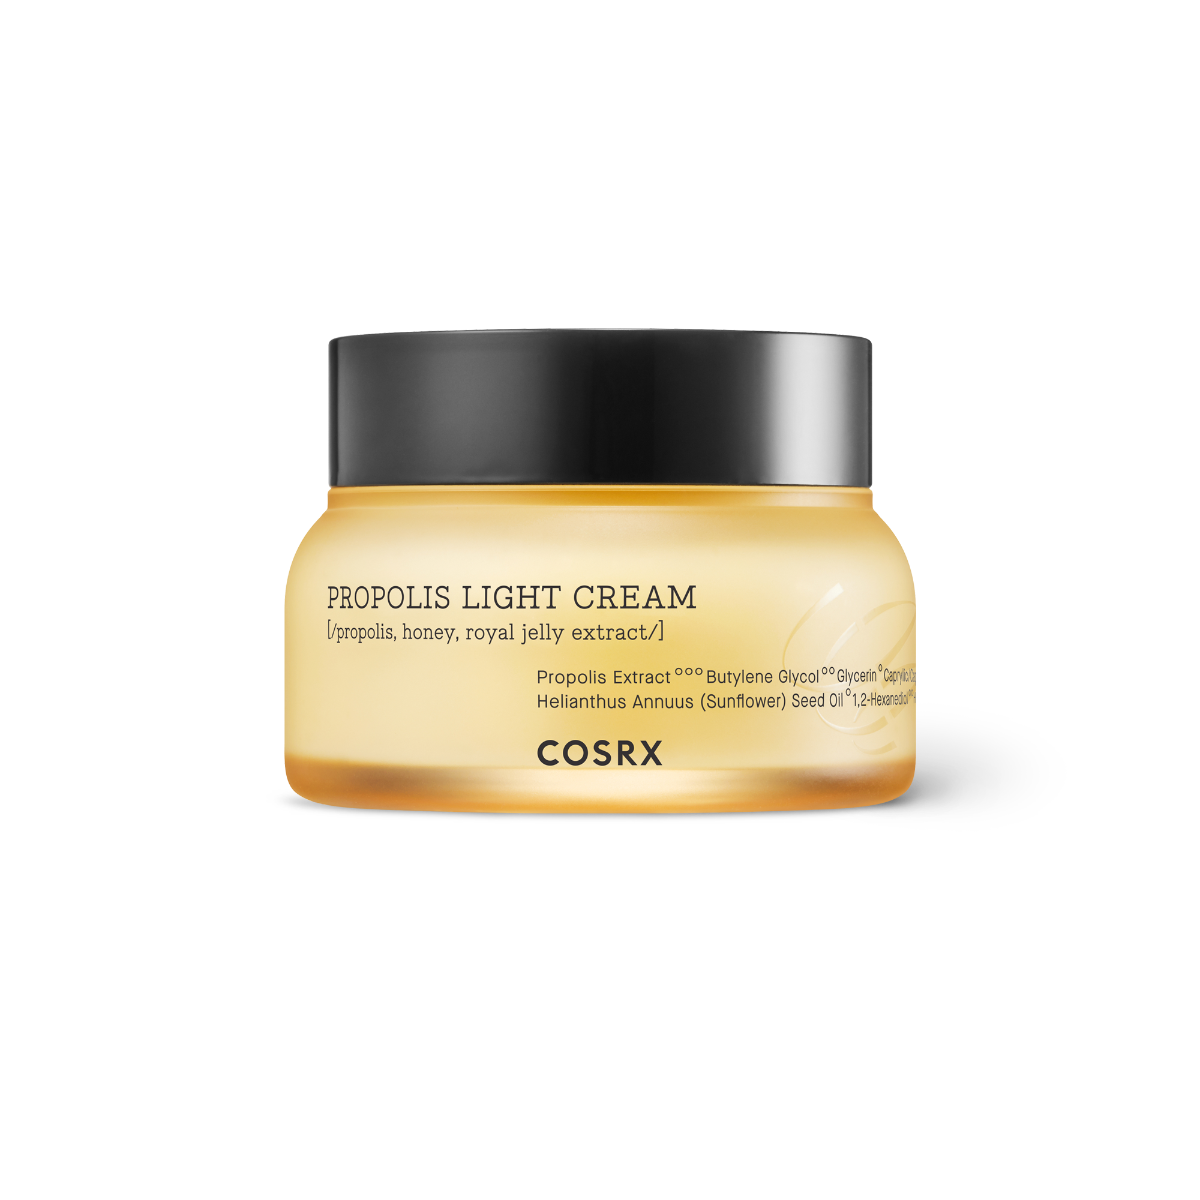 COSRX - Propolis Light Cream 1